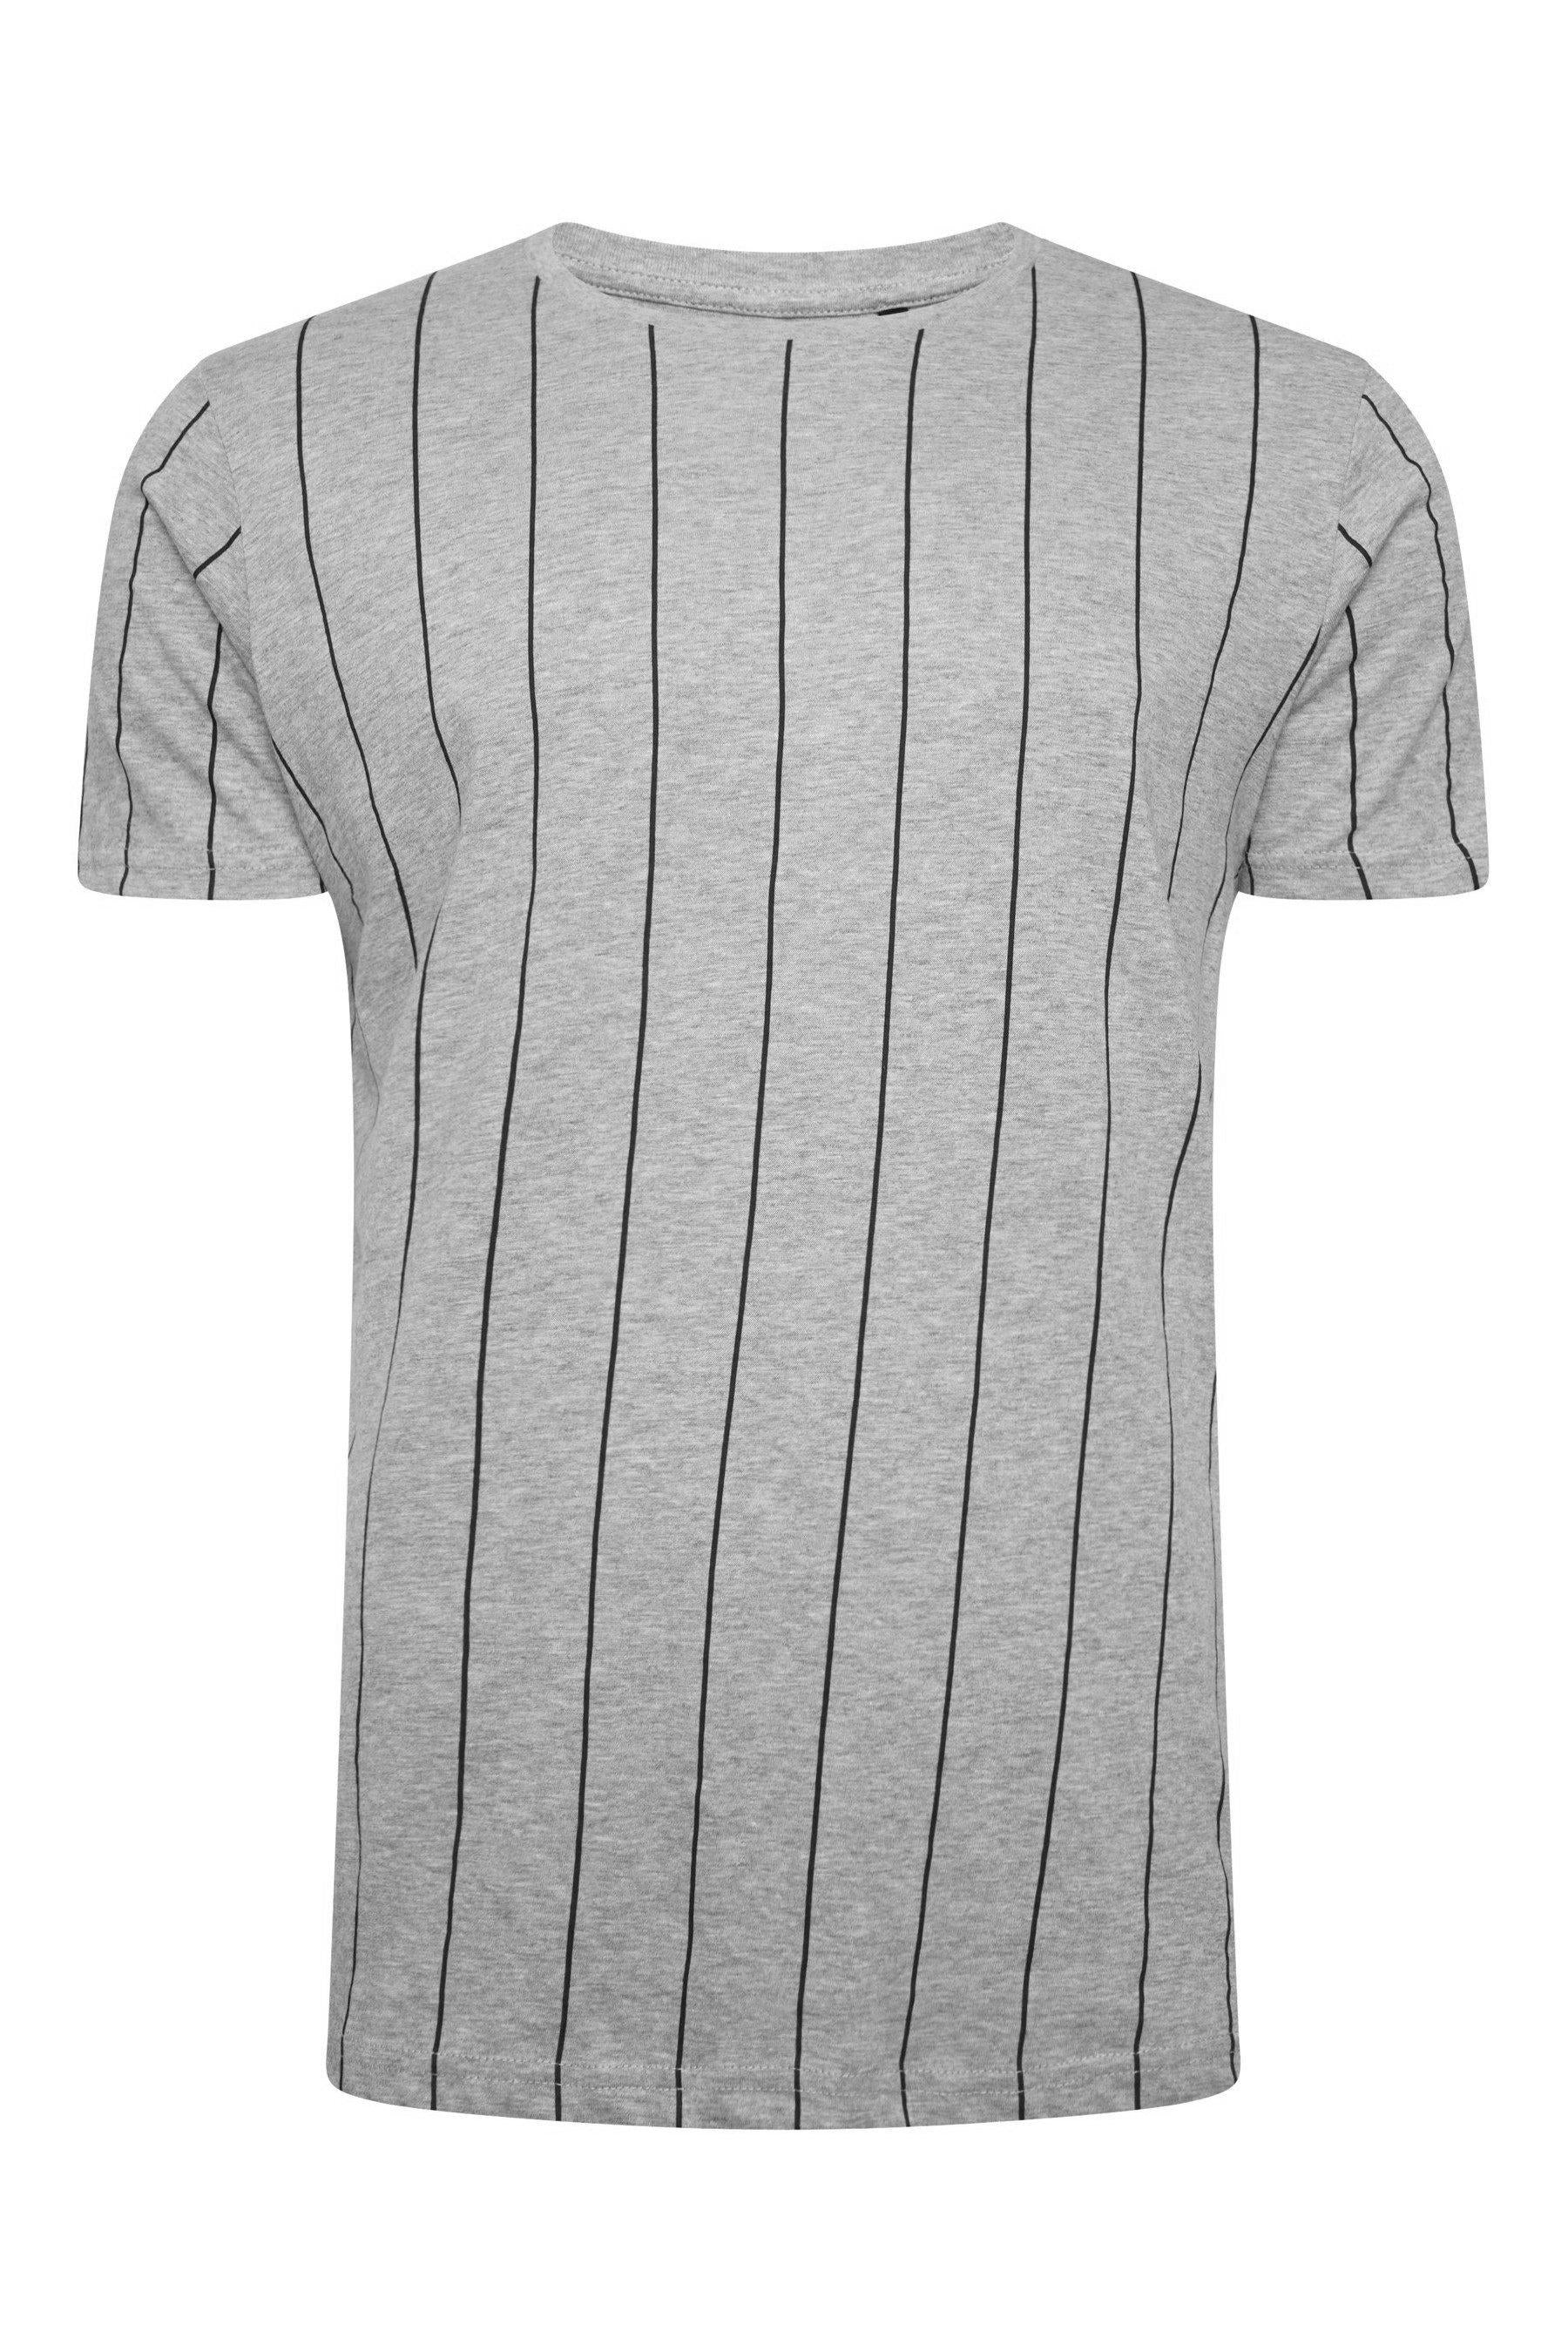 T-Shirts - Vertical Stripe T-Shirt Grey